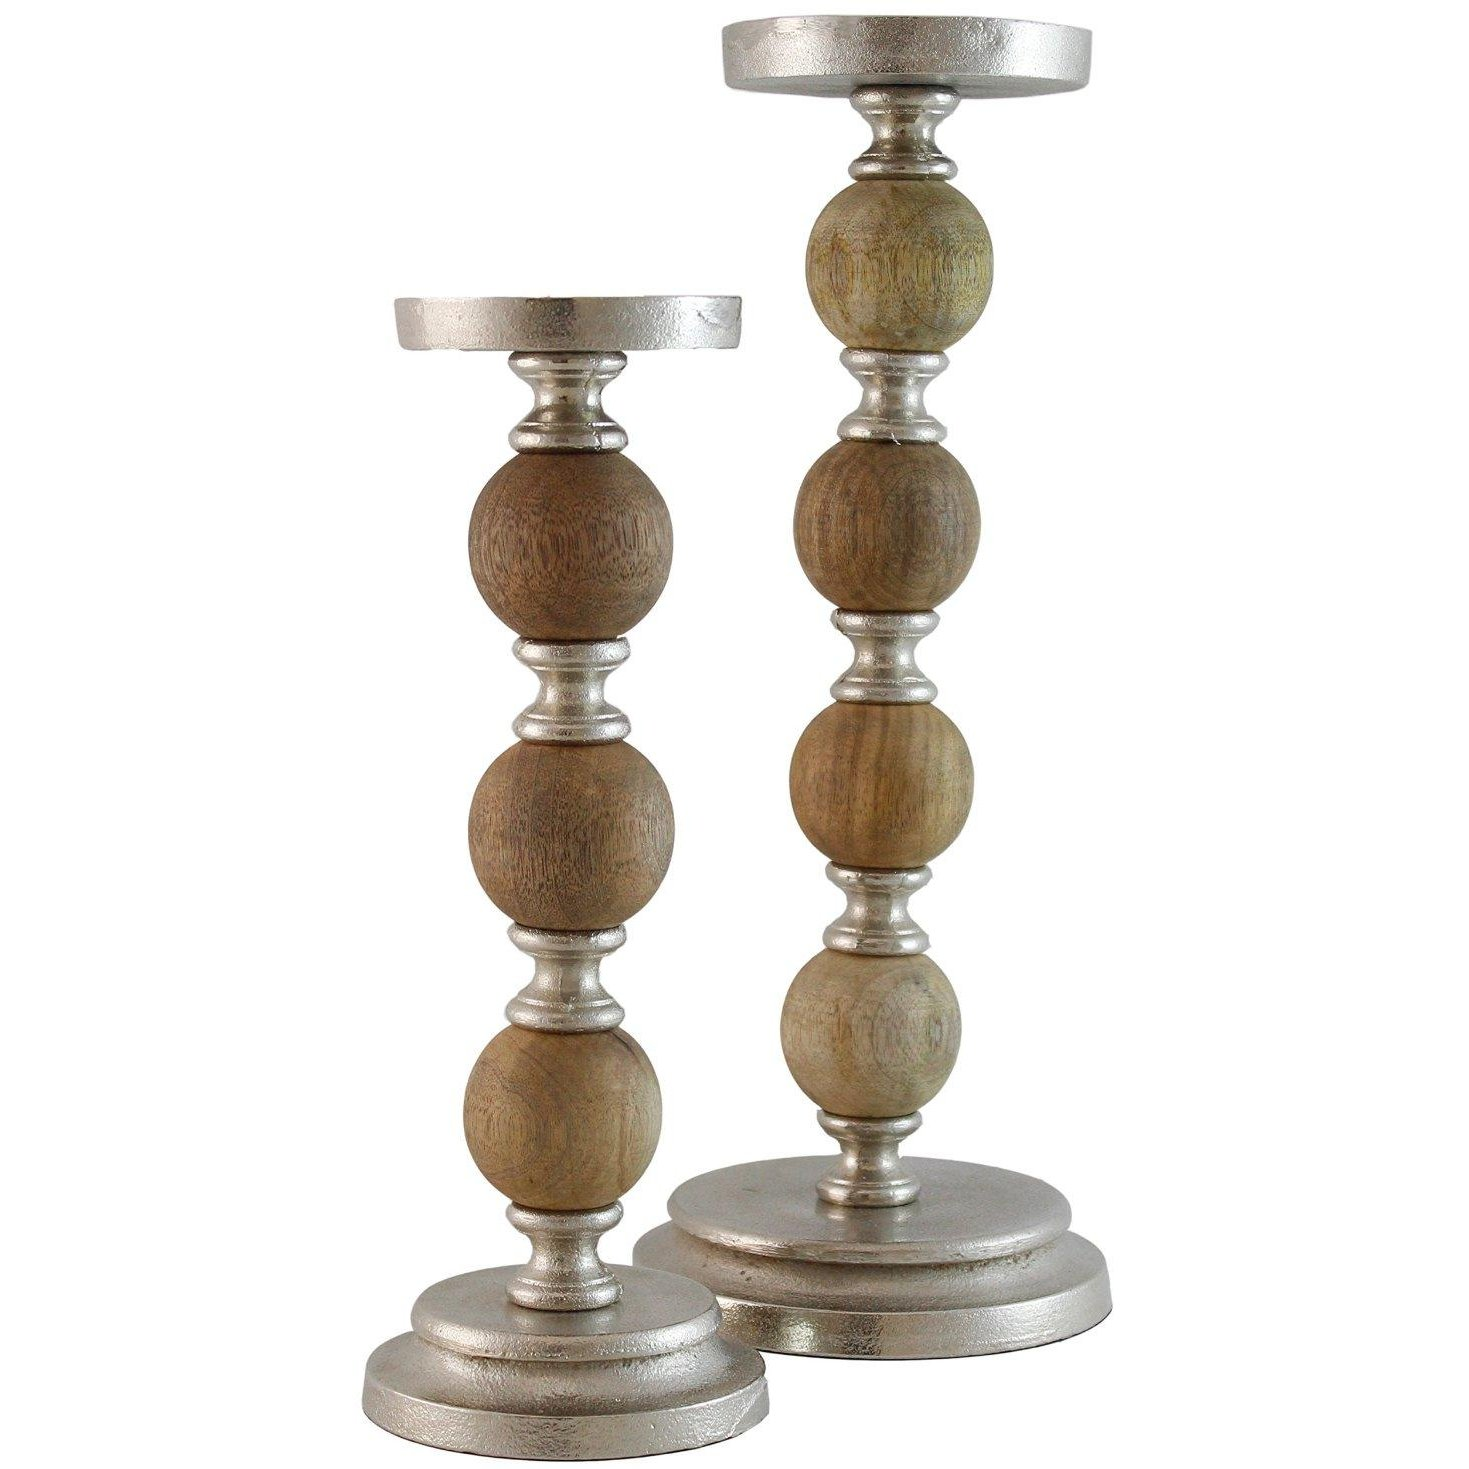 12 Inch Wood and Metal Pillar Candle Holder | RC Willey Furniture Store